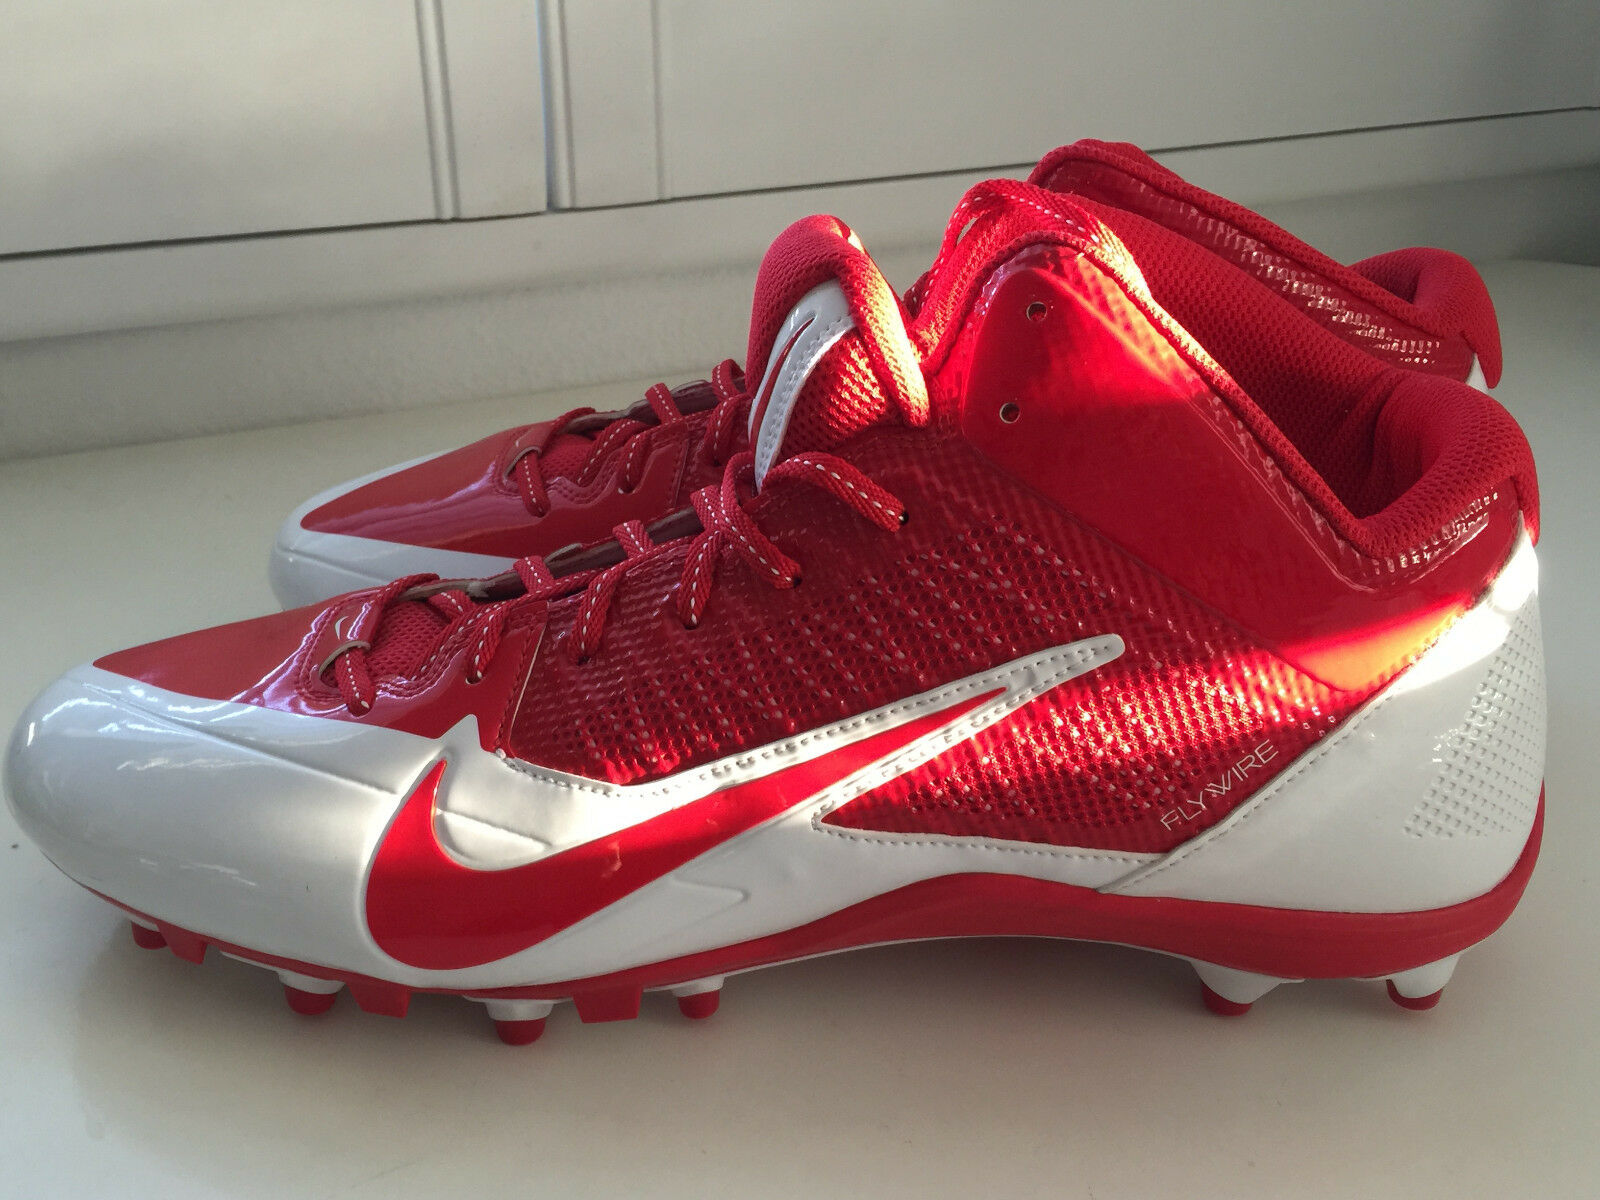 NIKE ORANGE AND WHITE  FOOTBALL CLEATS SIZE 14